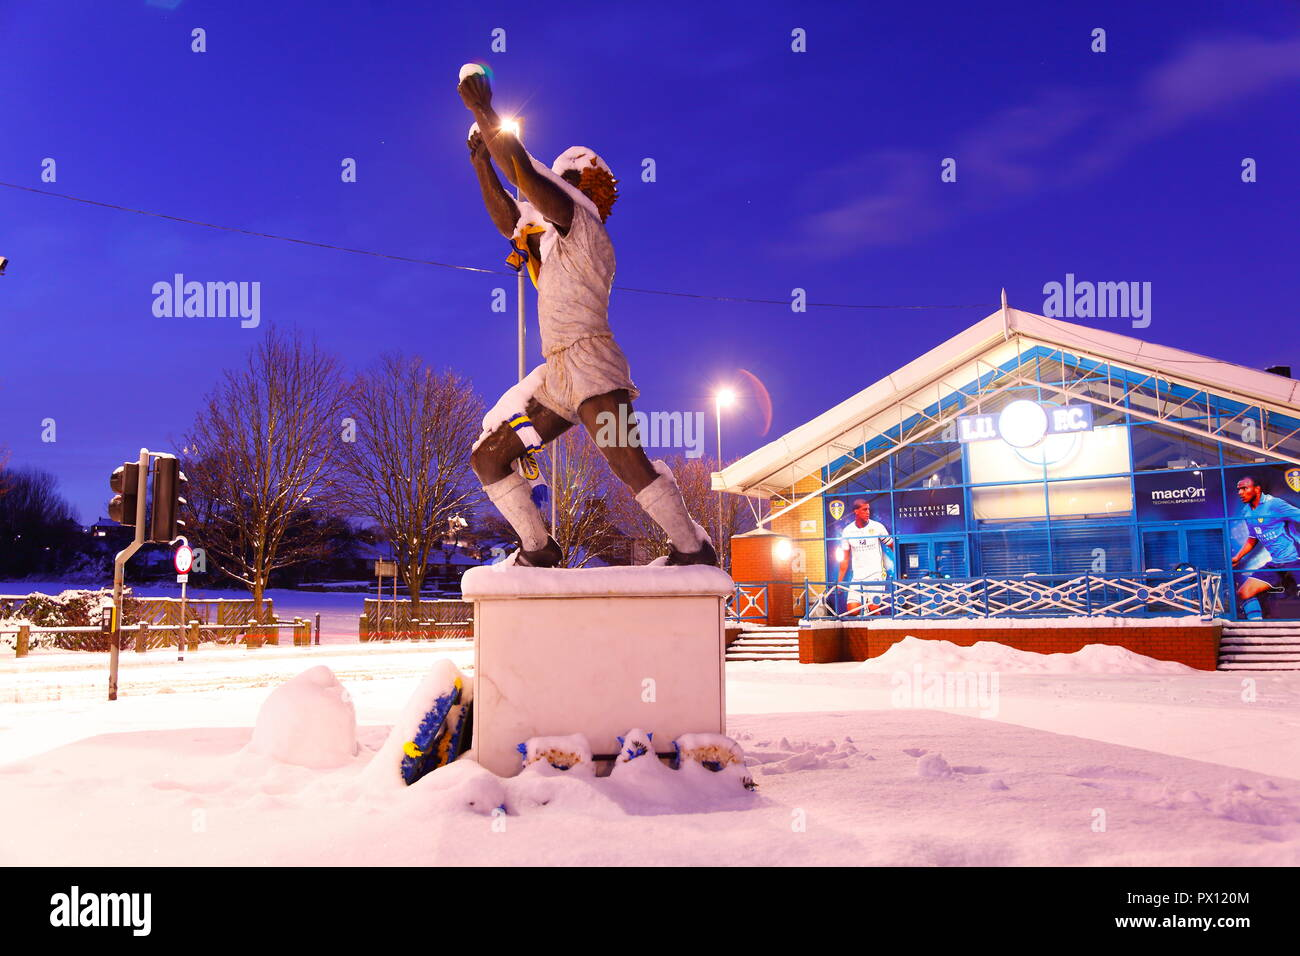 The Billy Bremner memorial outside the East Stand of Elland Road Football Stadium covered in snow. - Stock Image